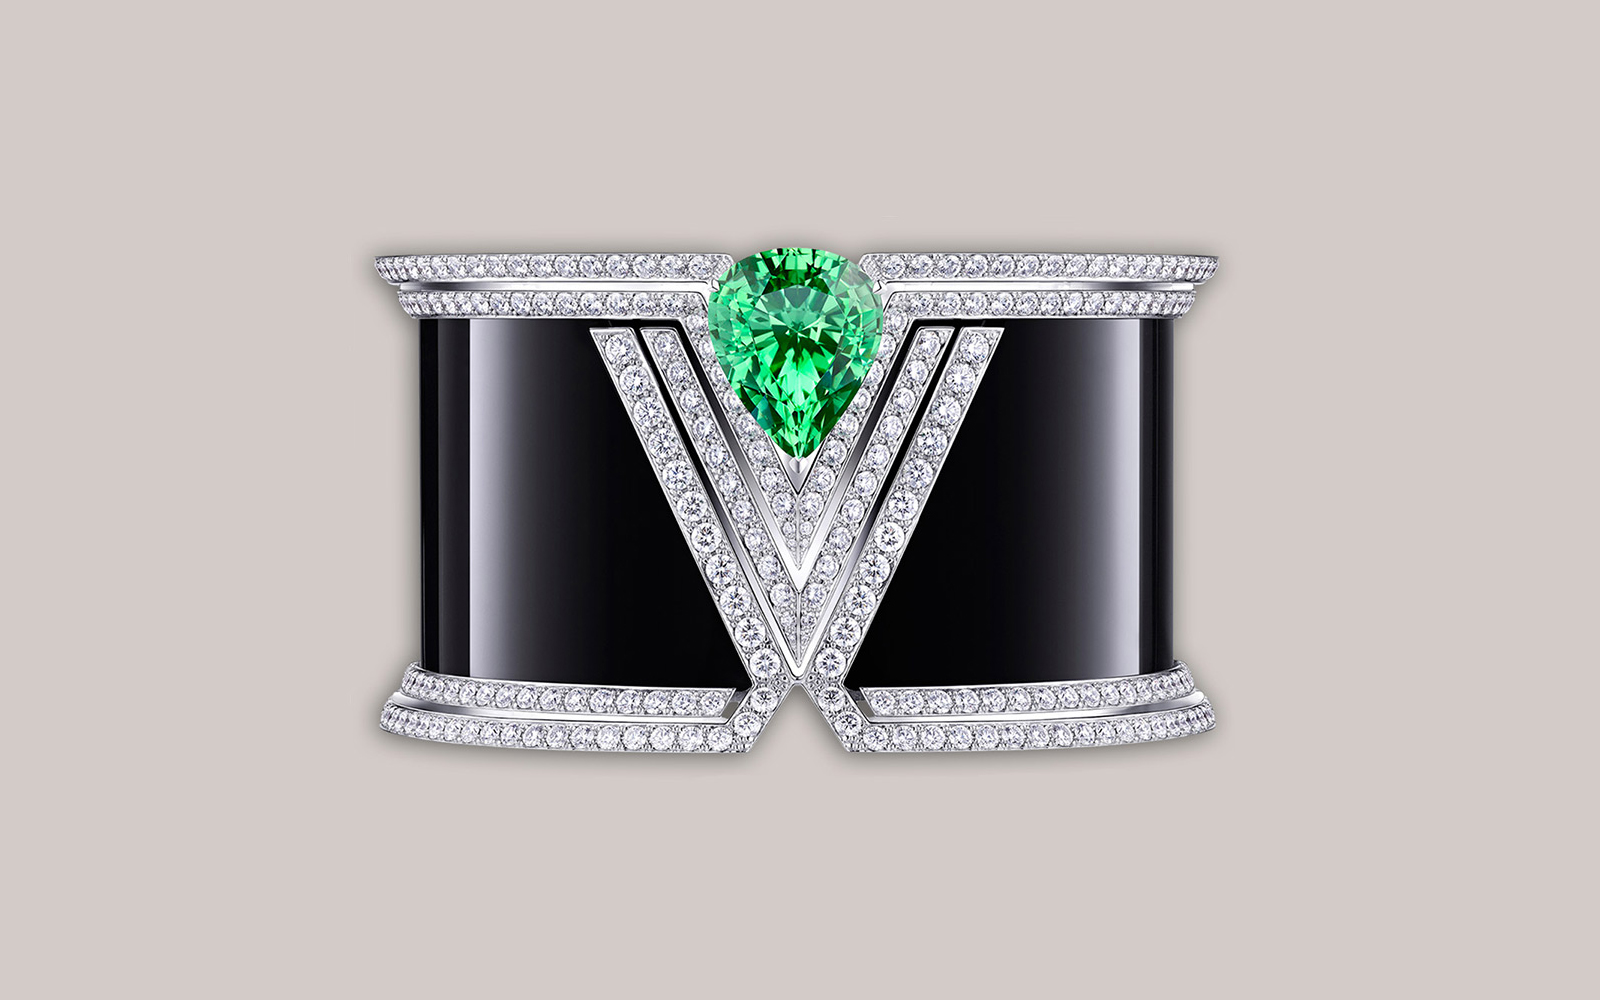 The new Acte V high jewellery collection by Louis Vuitton